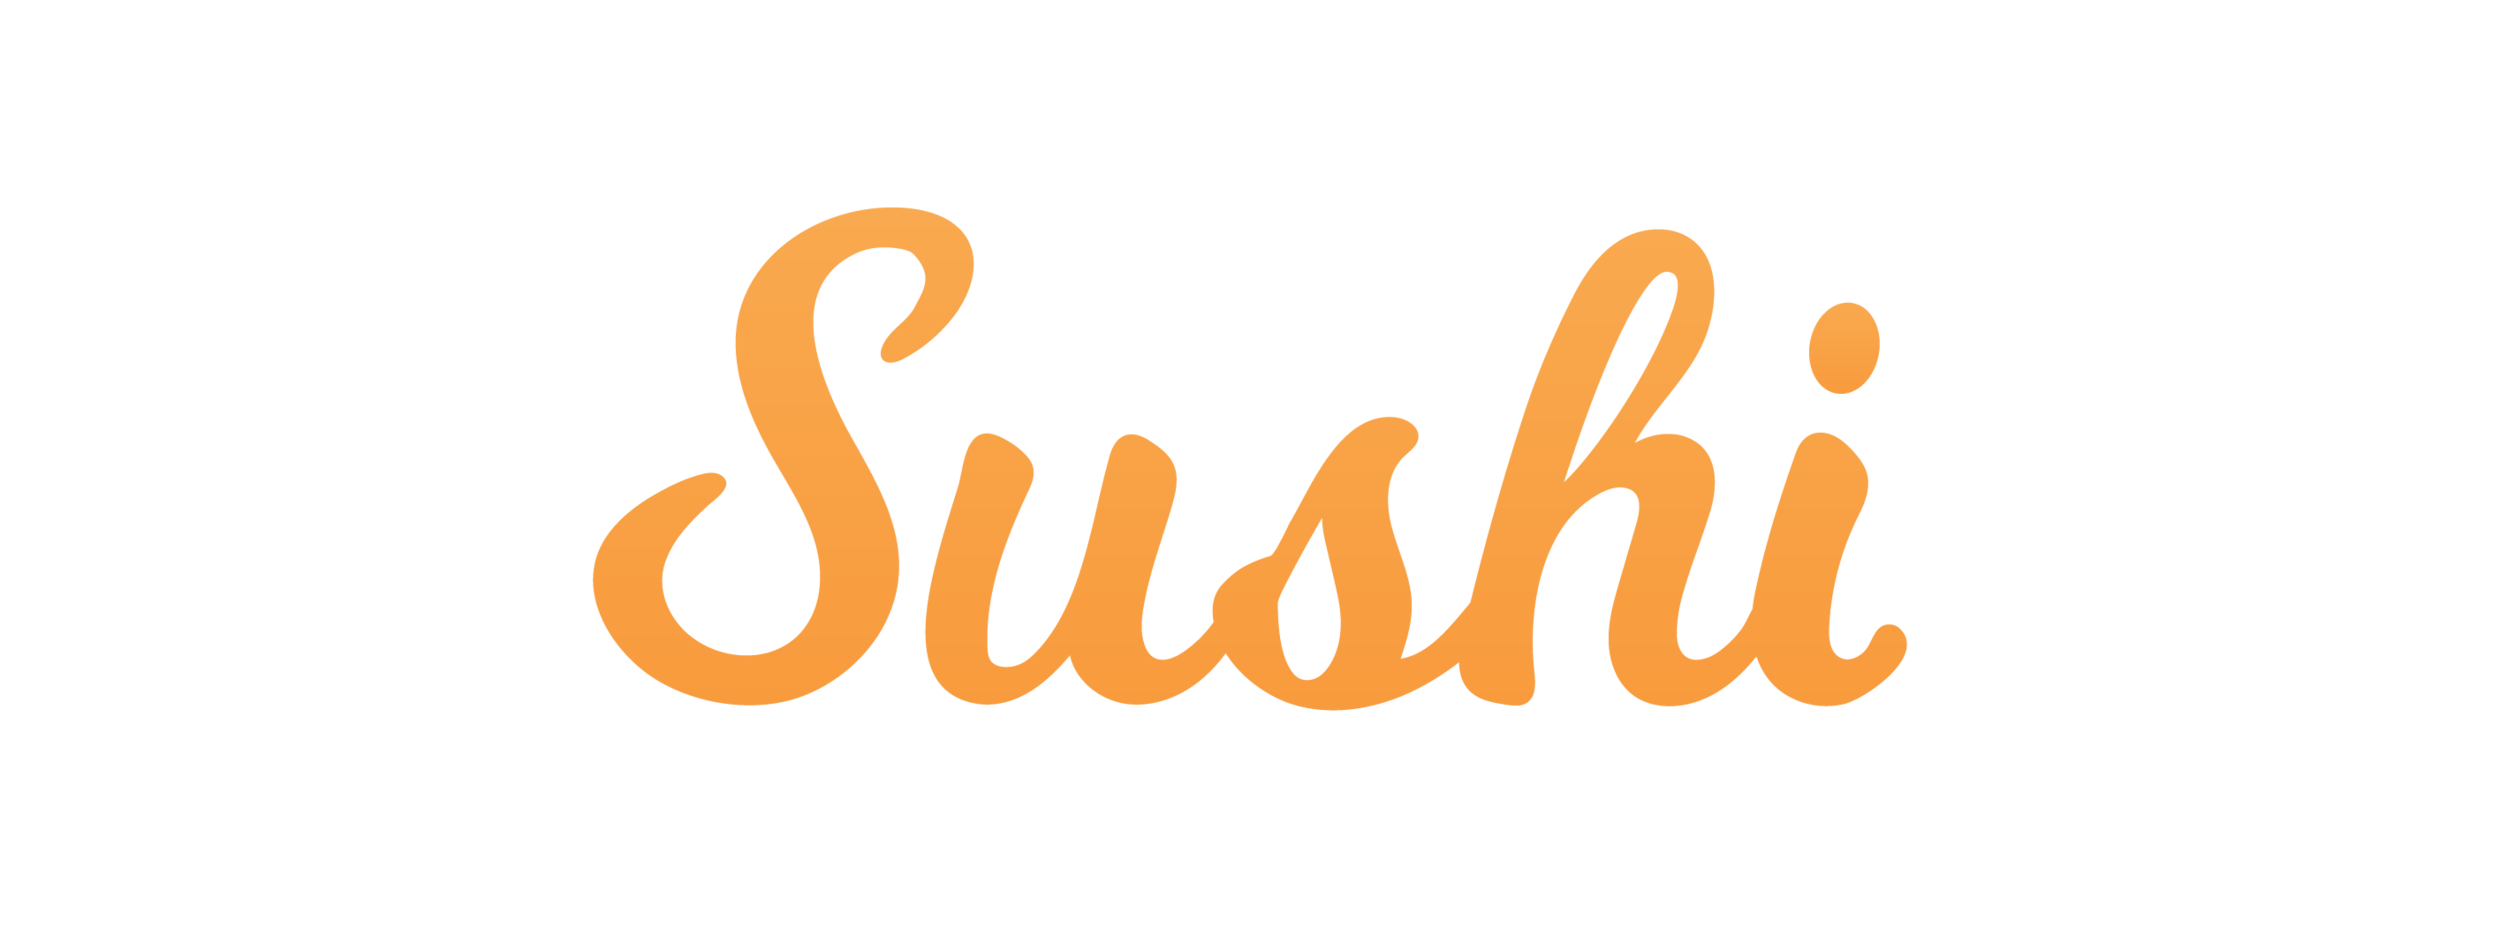 Sushi new 2-01.png